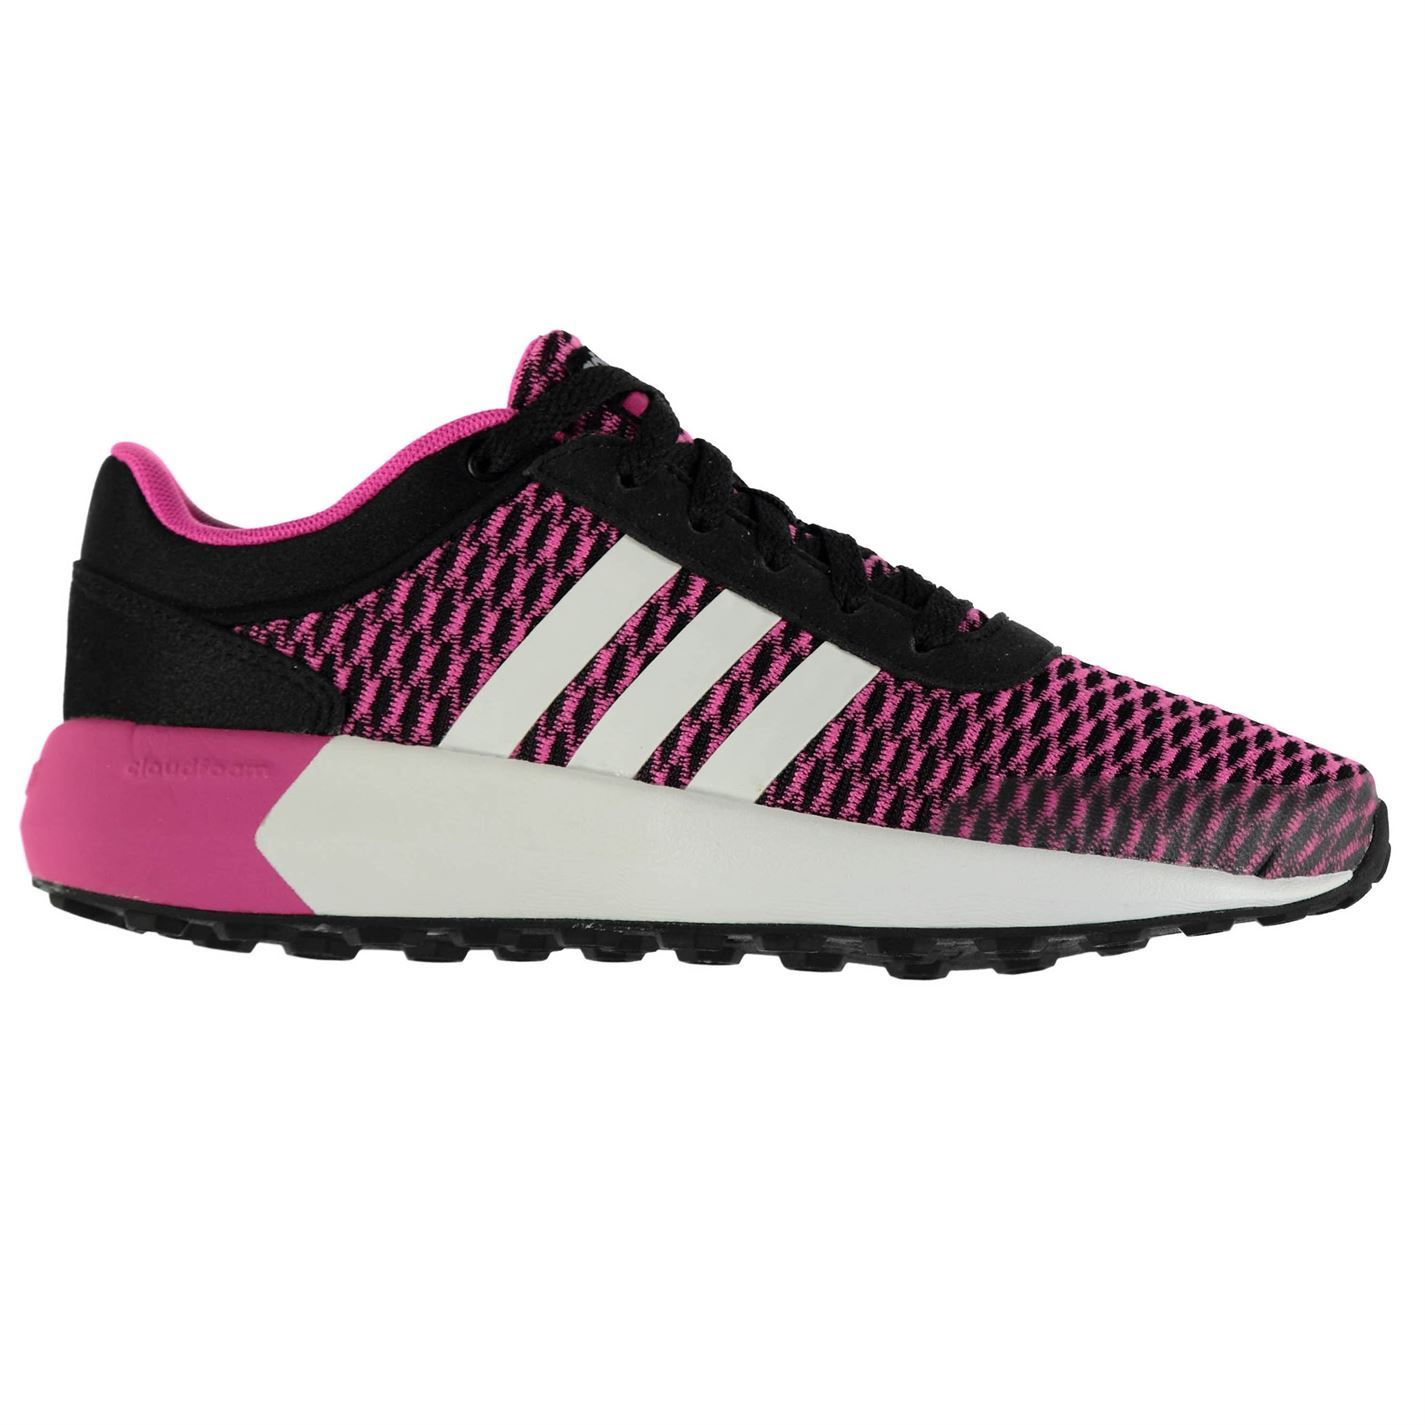 adidas cloudfoam race ladies trainers